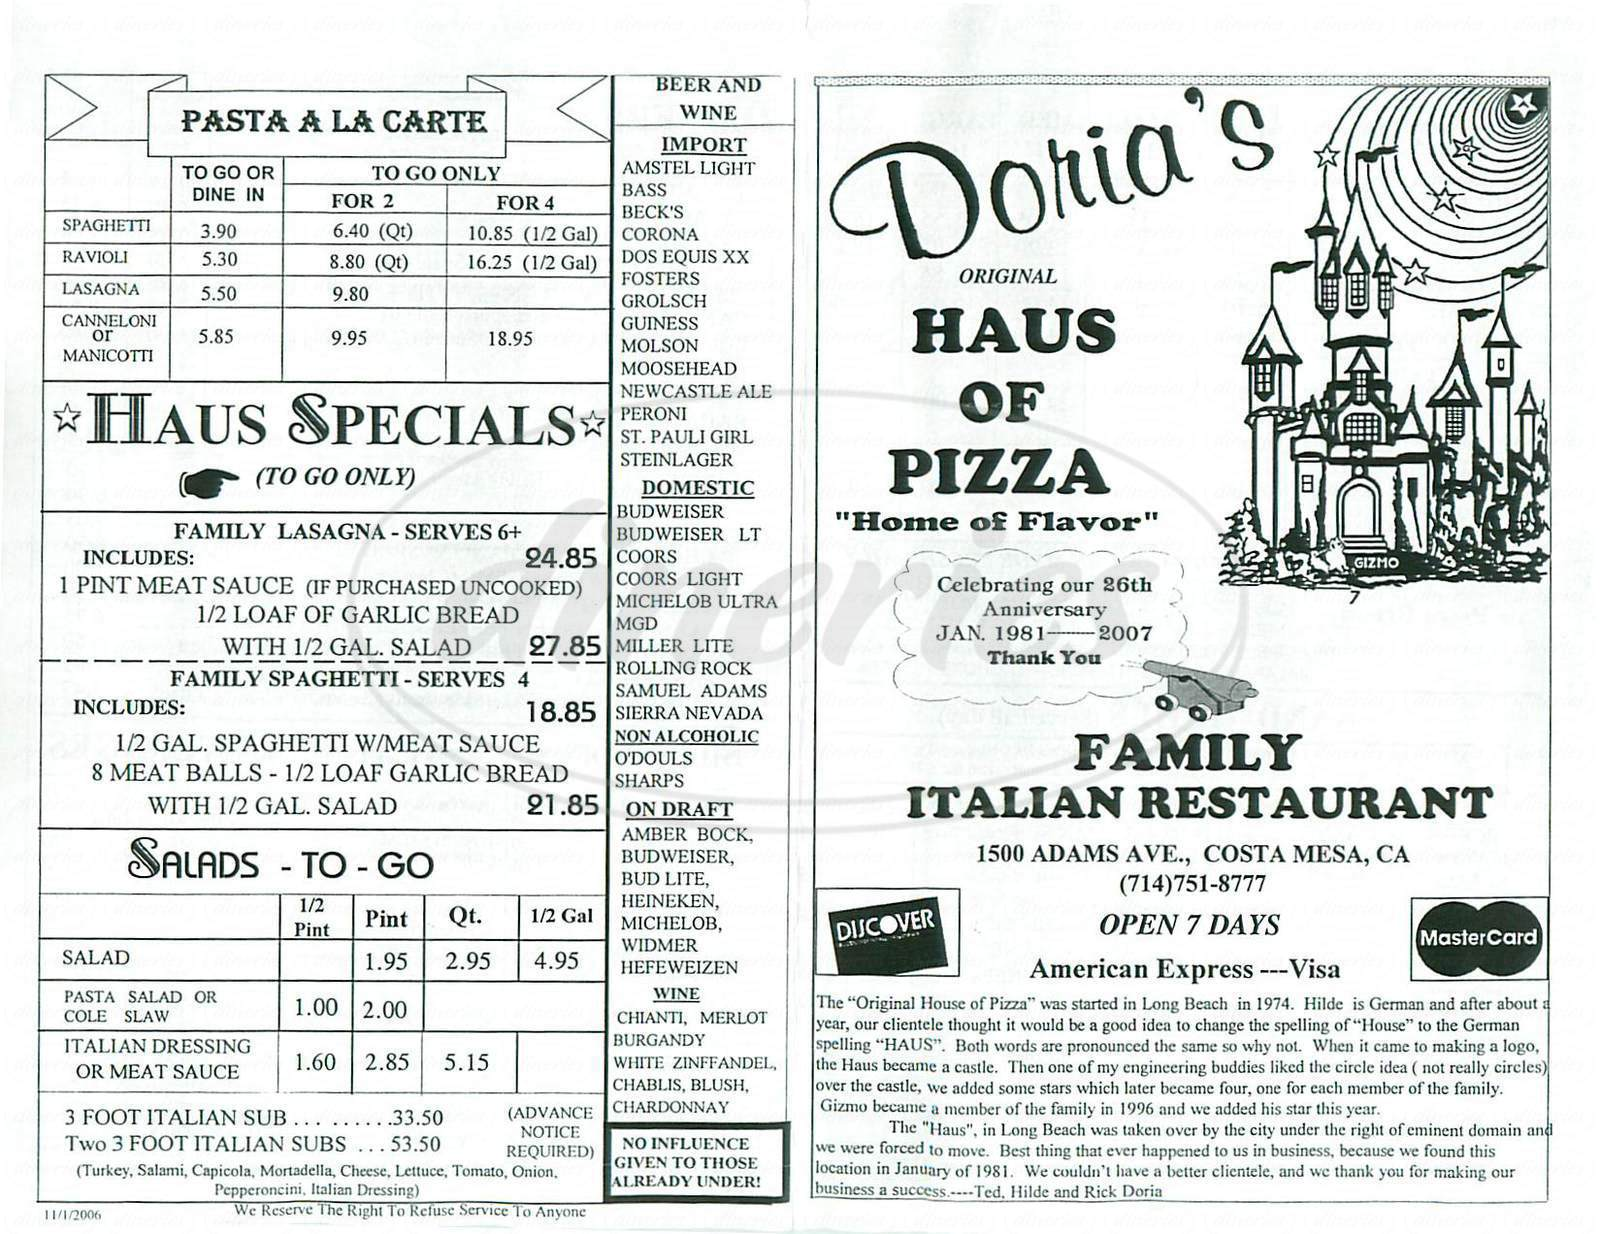 menu for Haus of Pizza